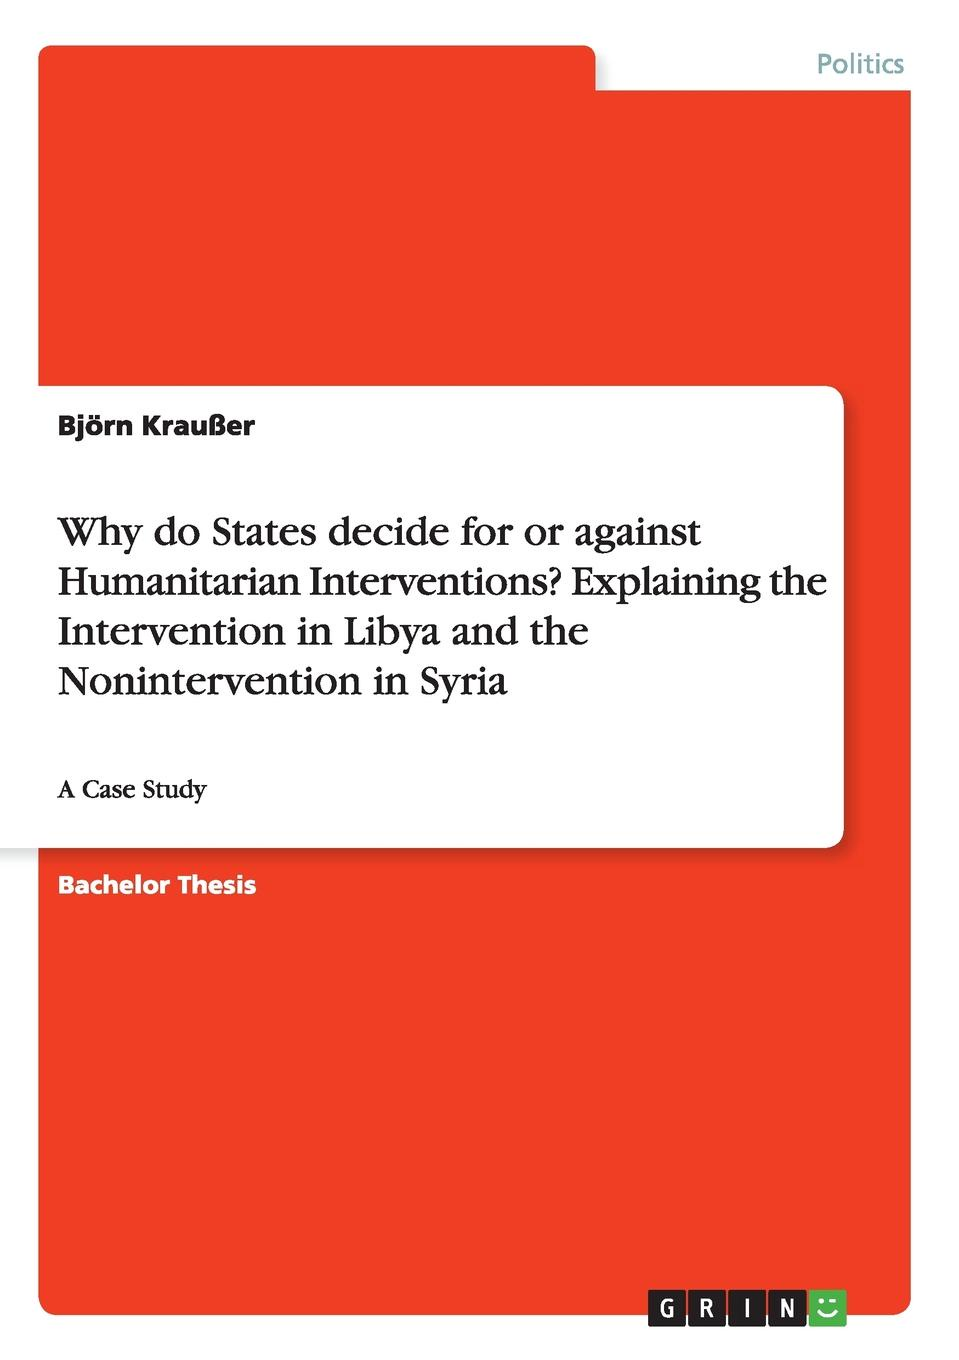 Björn Kraußer Why do States decide for or against Humanitarian Interventions. Explaining the Intervention in Libya and the Nonintervention in Syria bernard mayer the dynamics of conflict a guide to engagement and intervention